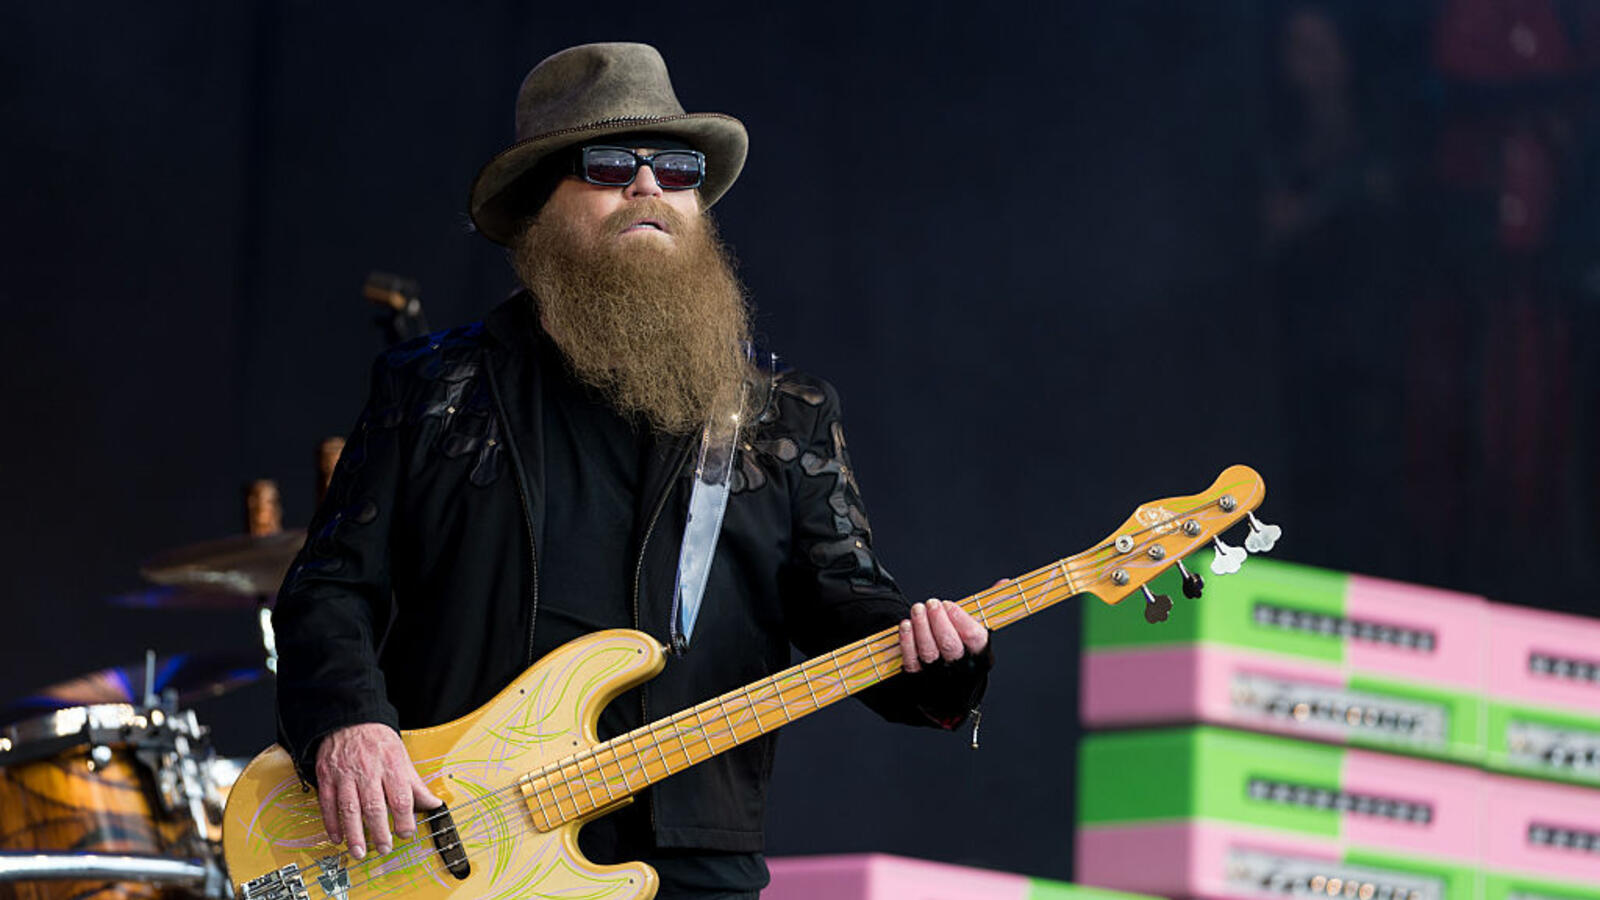 Dusty Hill's Wife Writes Heartfelt Message For Late Husband